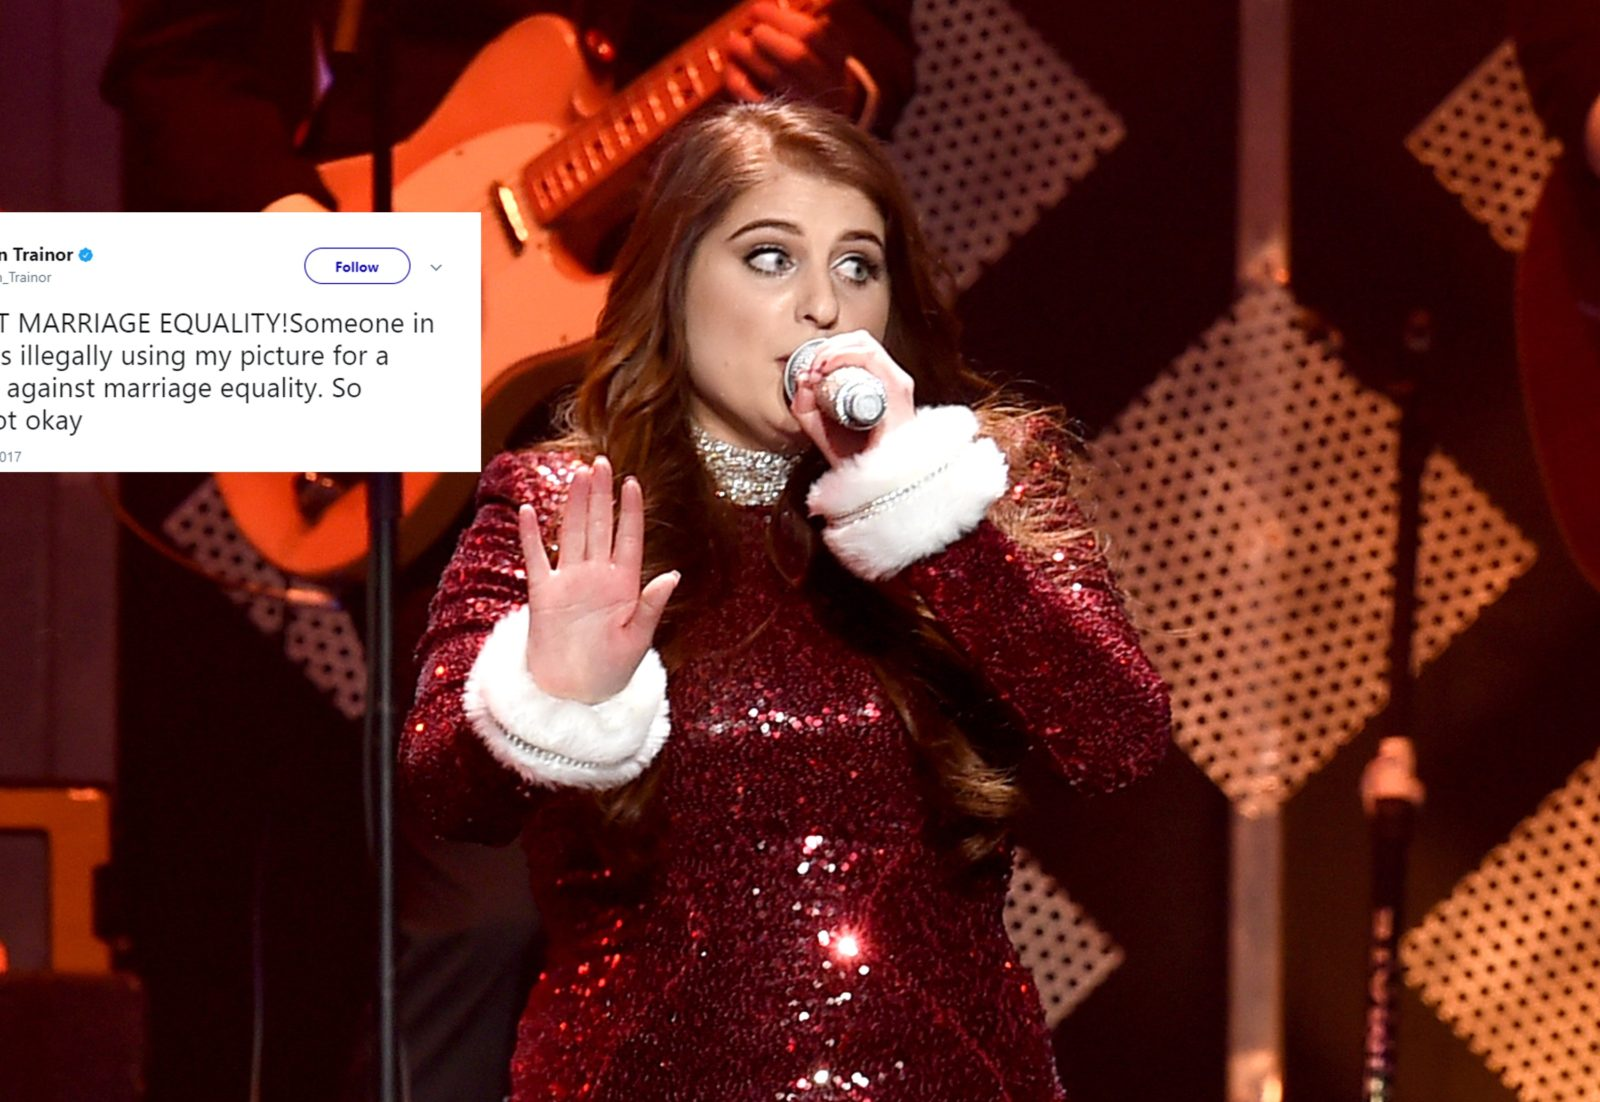 meghan trainor getty tweet